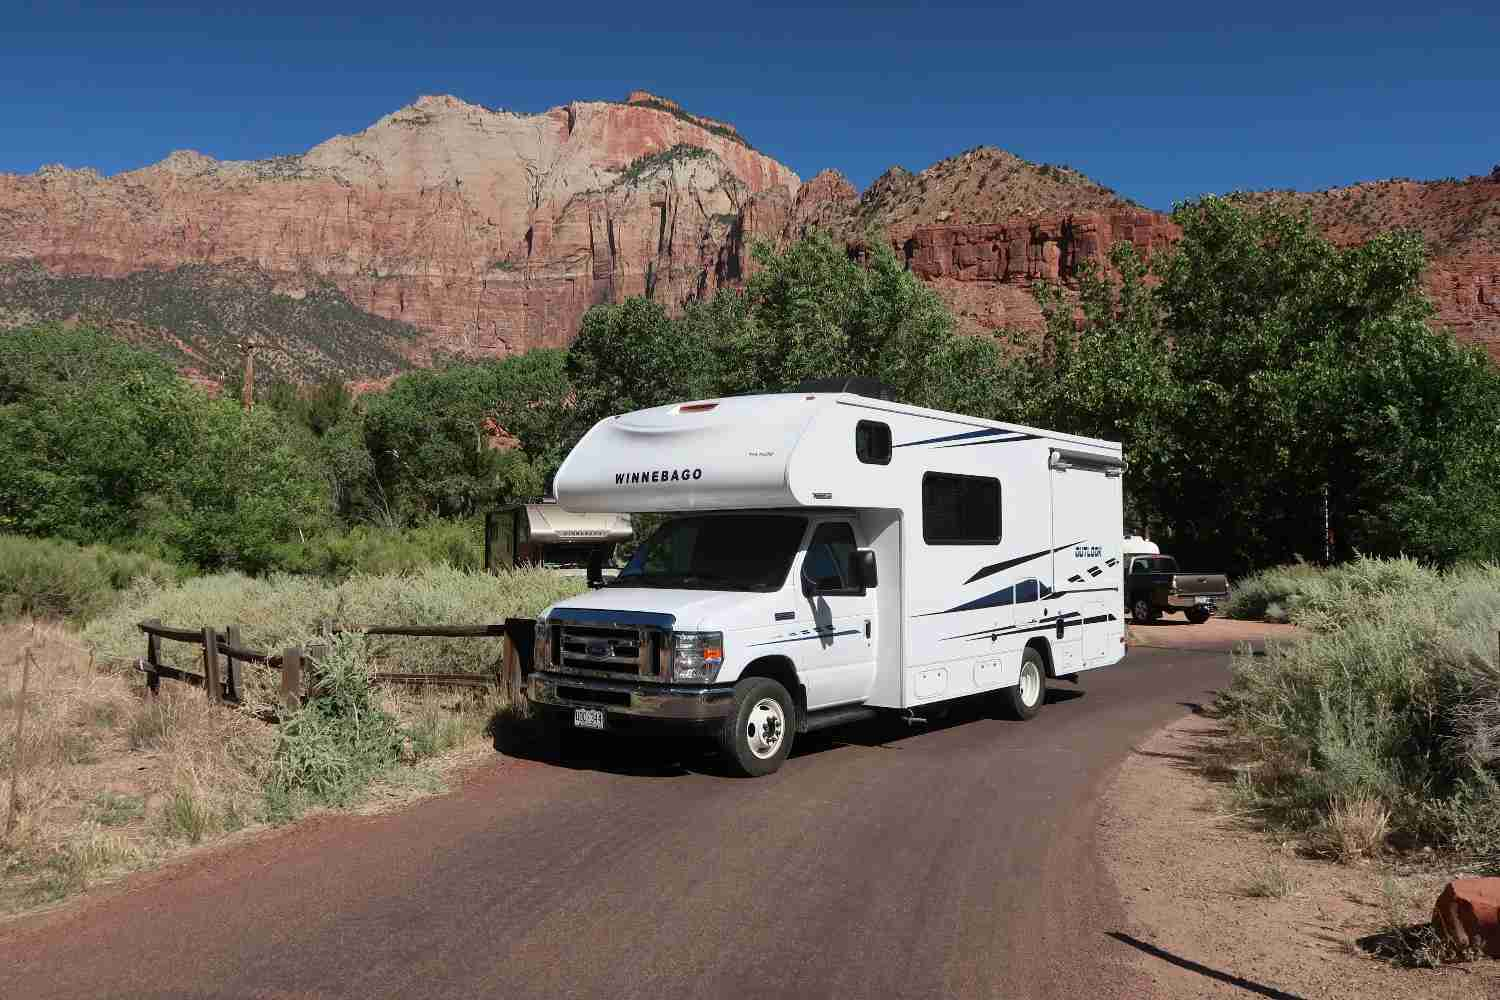 RV Zion (Photo by JT Genter/The Points Guy)